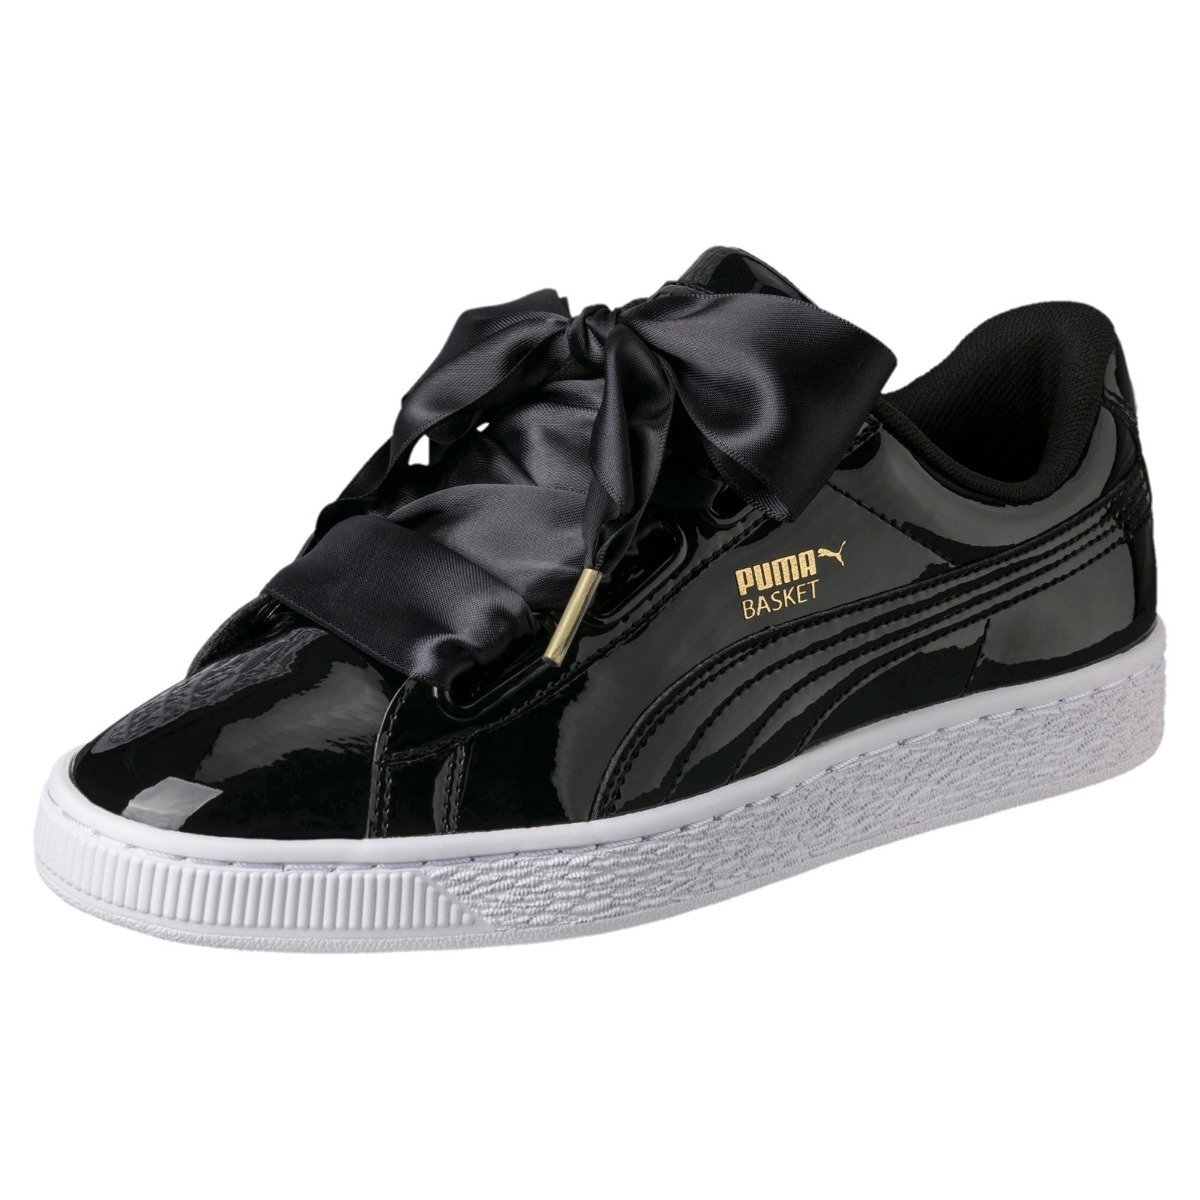 cd8372f1 tenis puma basket para dama, ultima coleccion zapatillas. 4 Fotos